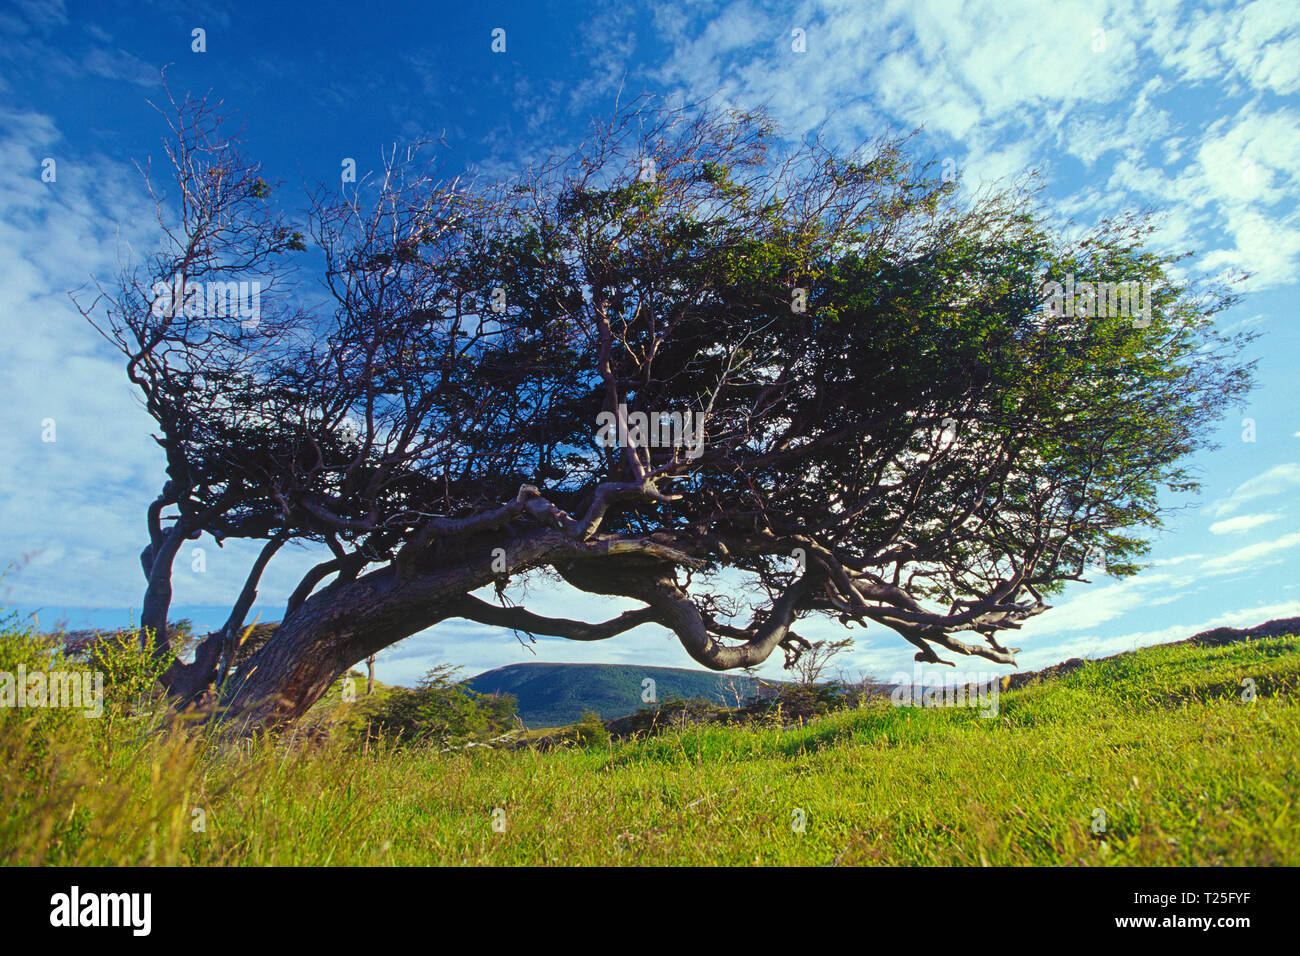 Flag tree (Arbol bandera), tree formed by the wind, Tierra del Fuego, Patagonia, Argentina Stock Photo